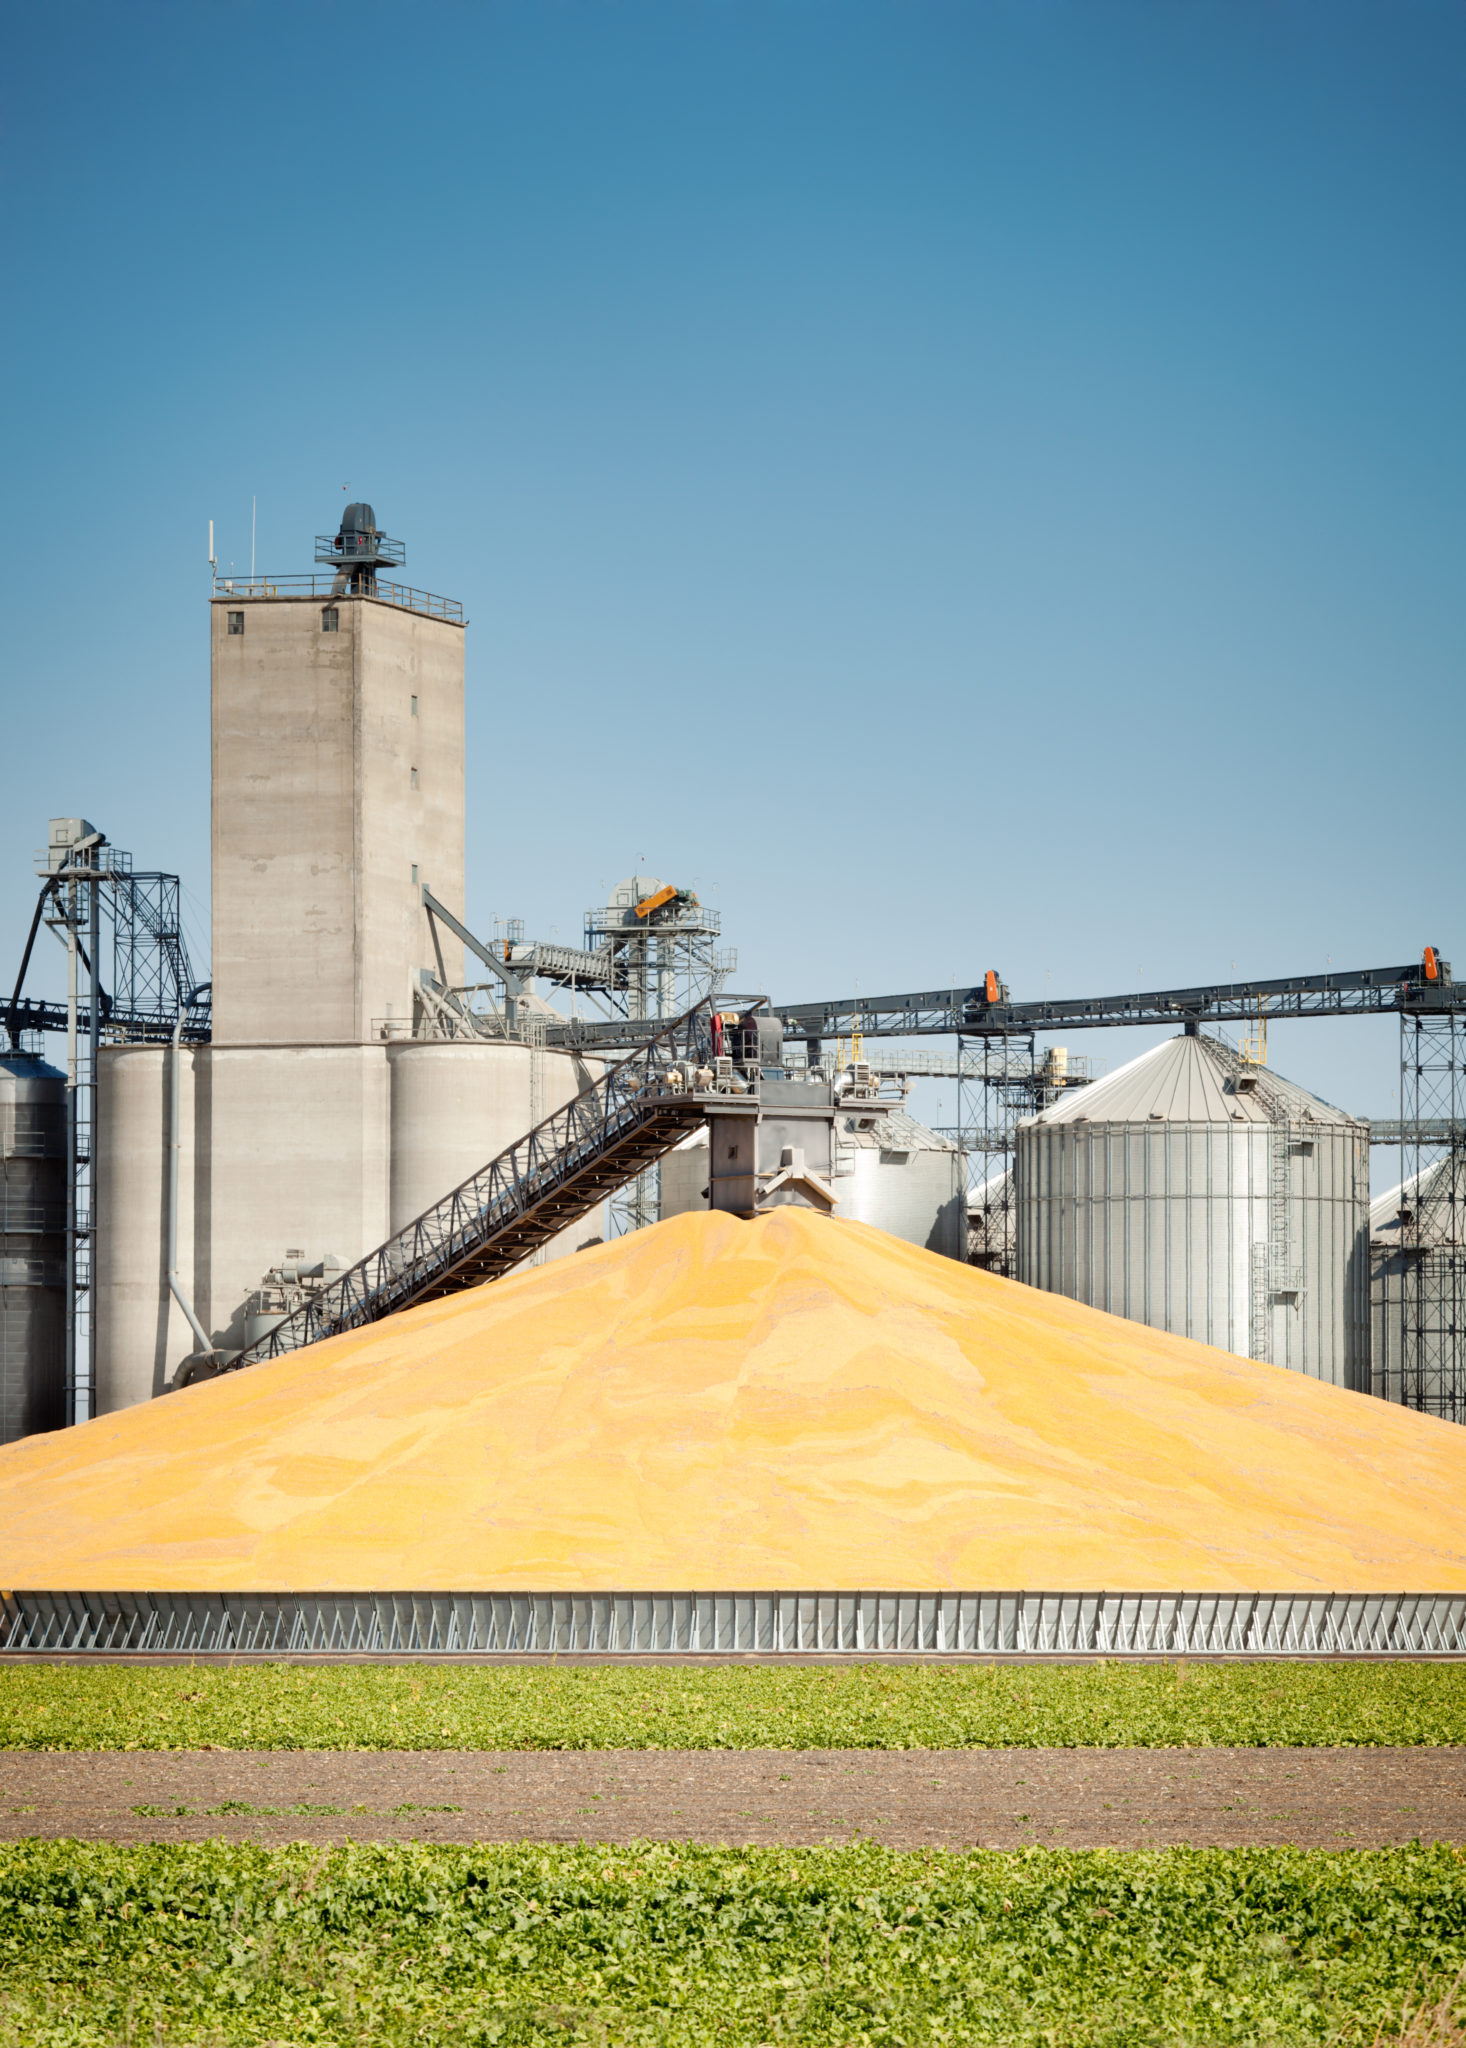 Kaman Automation iStock 174935118 Corn Harvest Processing Plant and Silos scaled